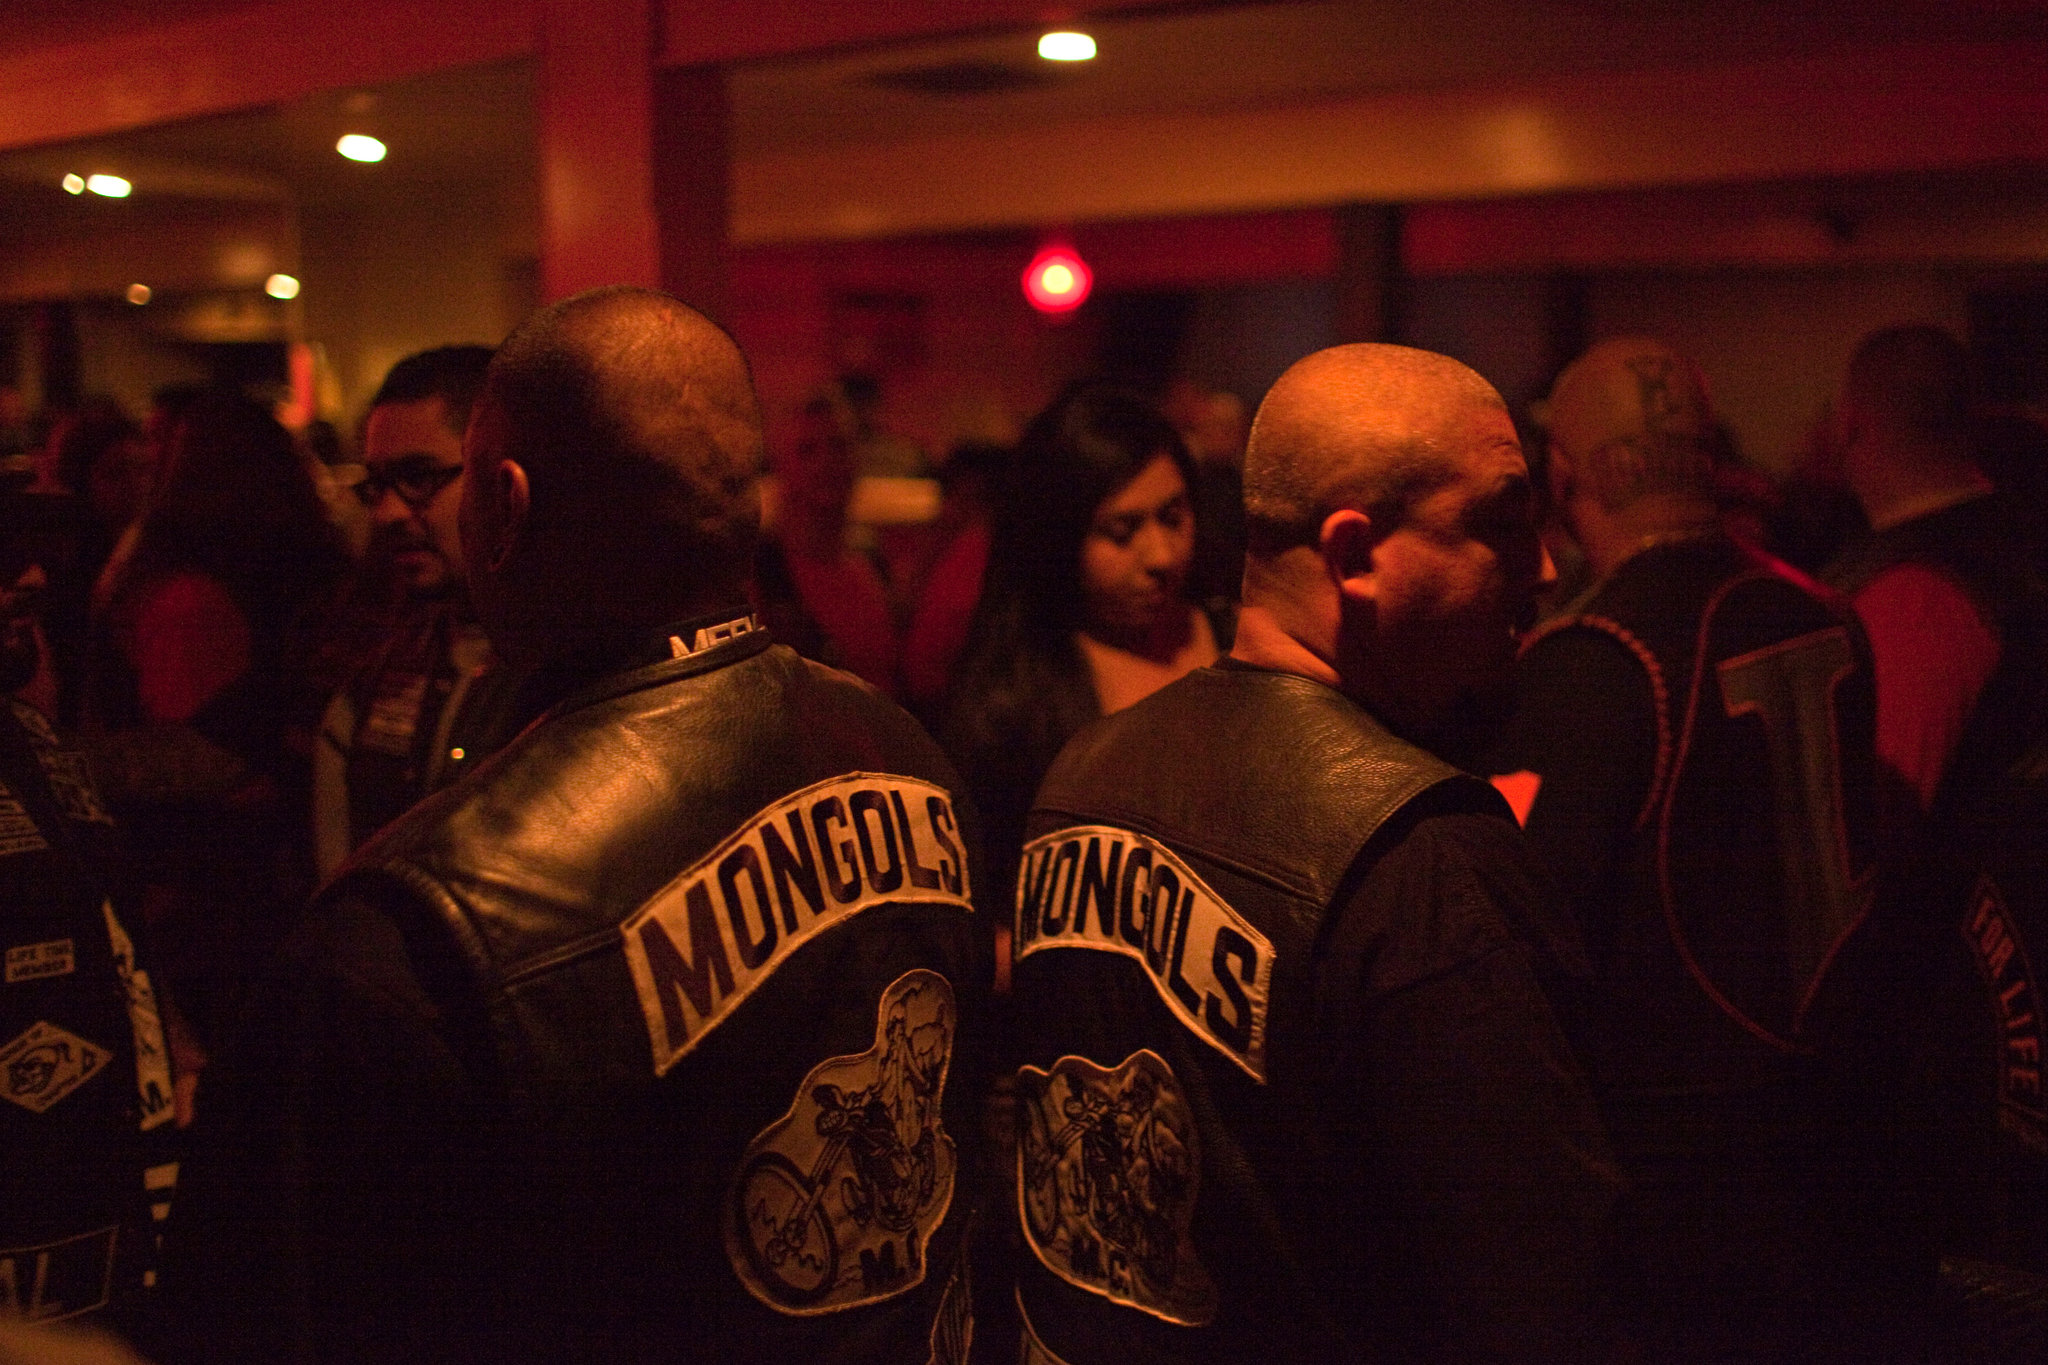 Federal prosecutors want to seize the rights to the logo of the Mongols Motorcycle Club and suppress its use.  Julie Platner for The New York Times